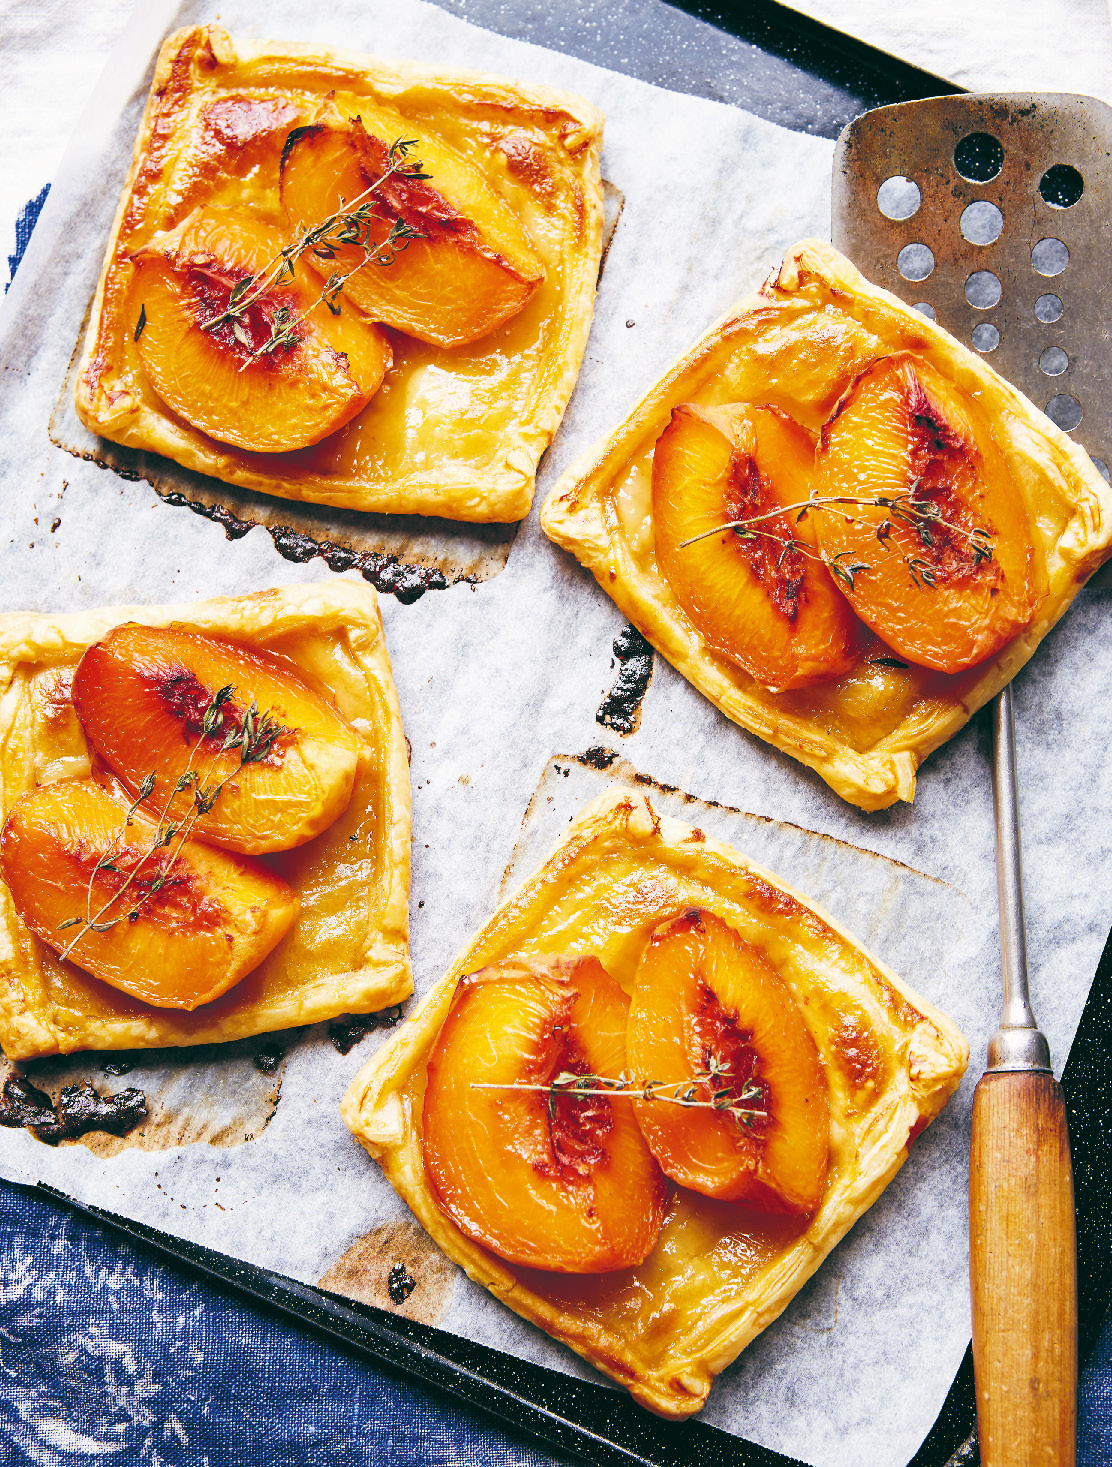 Peach tartlets